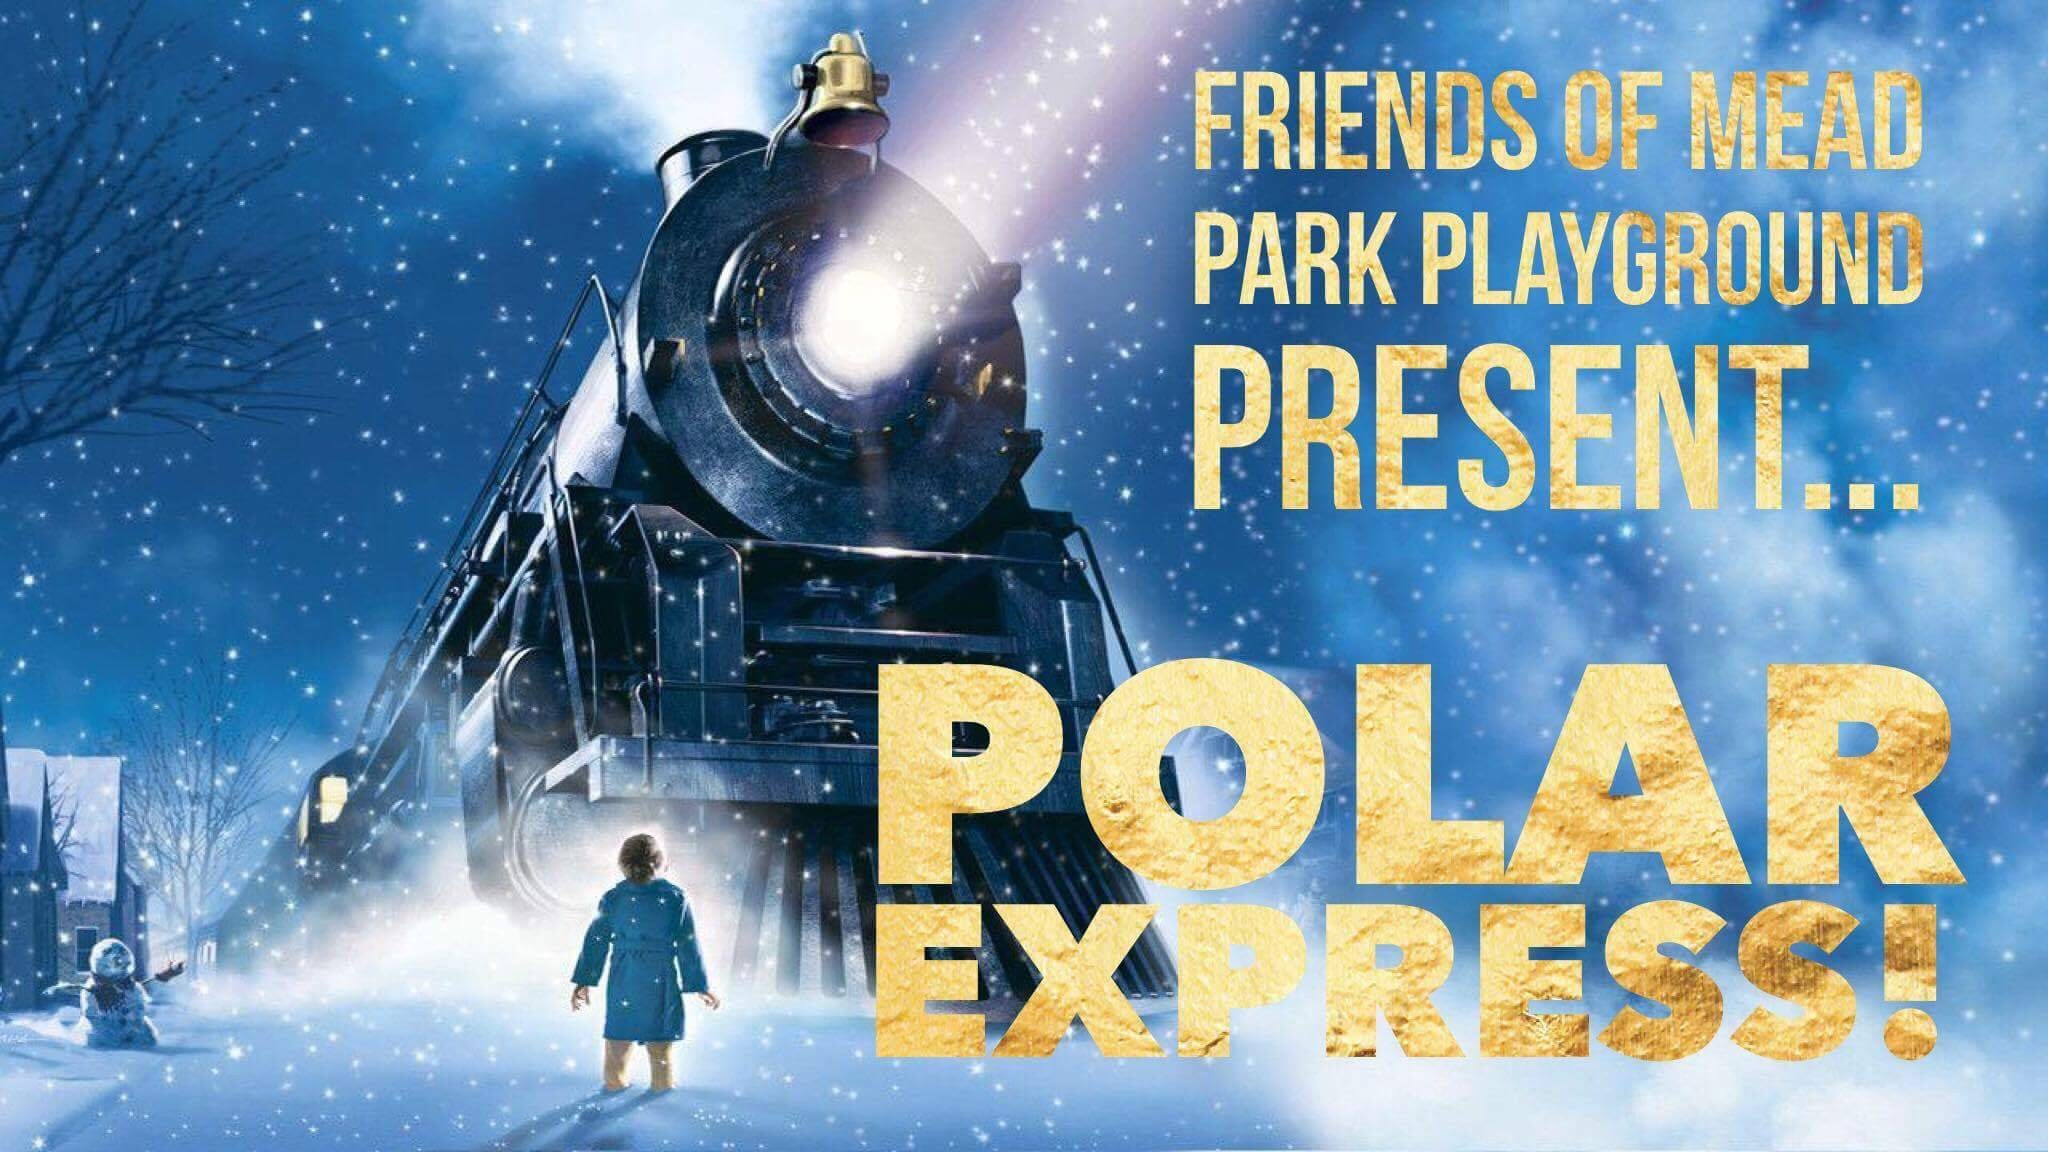 The polar express full movie download in hindi 300mb